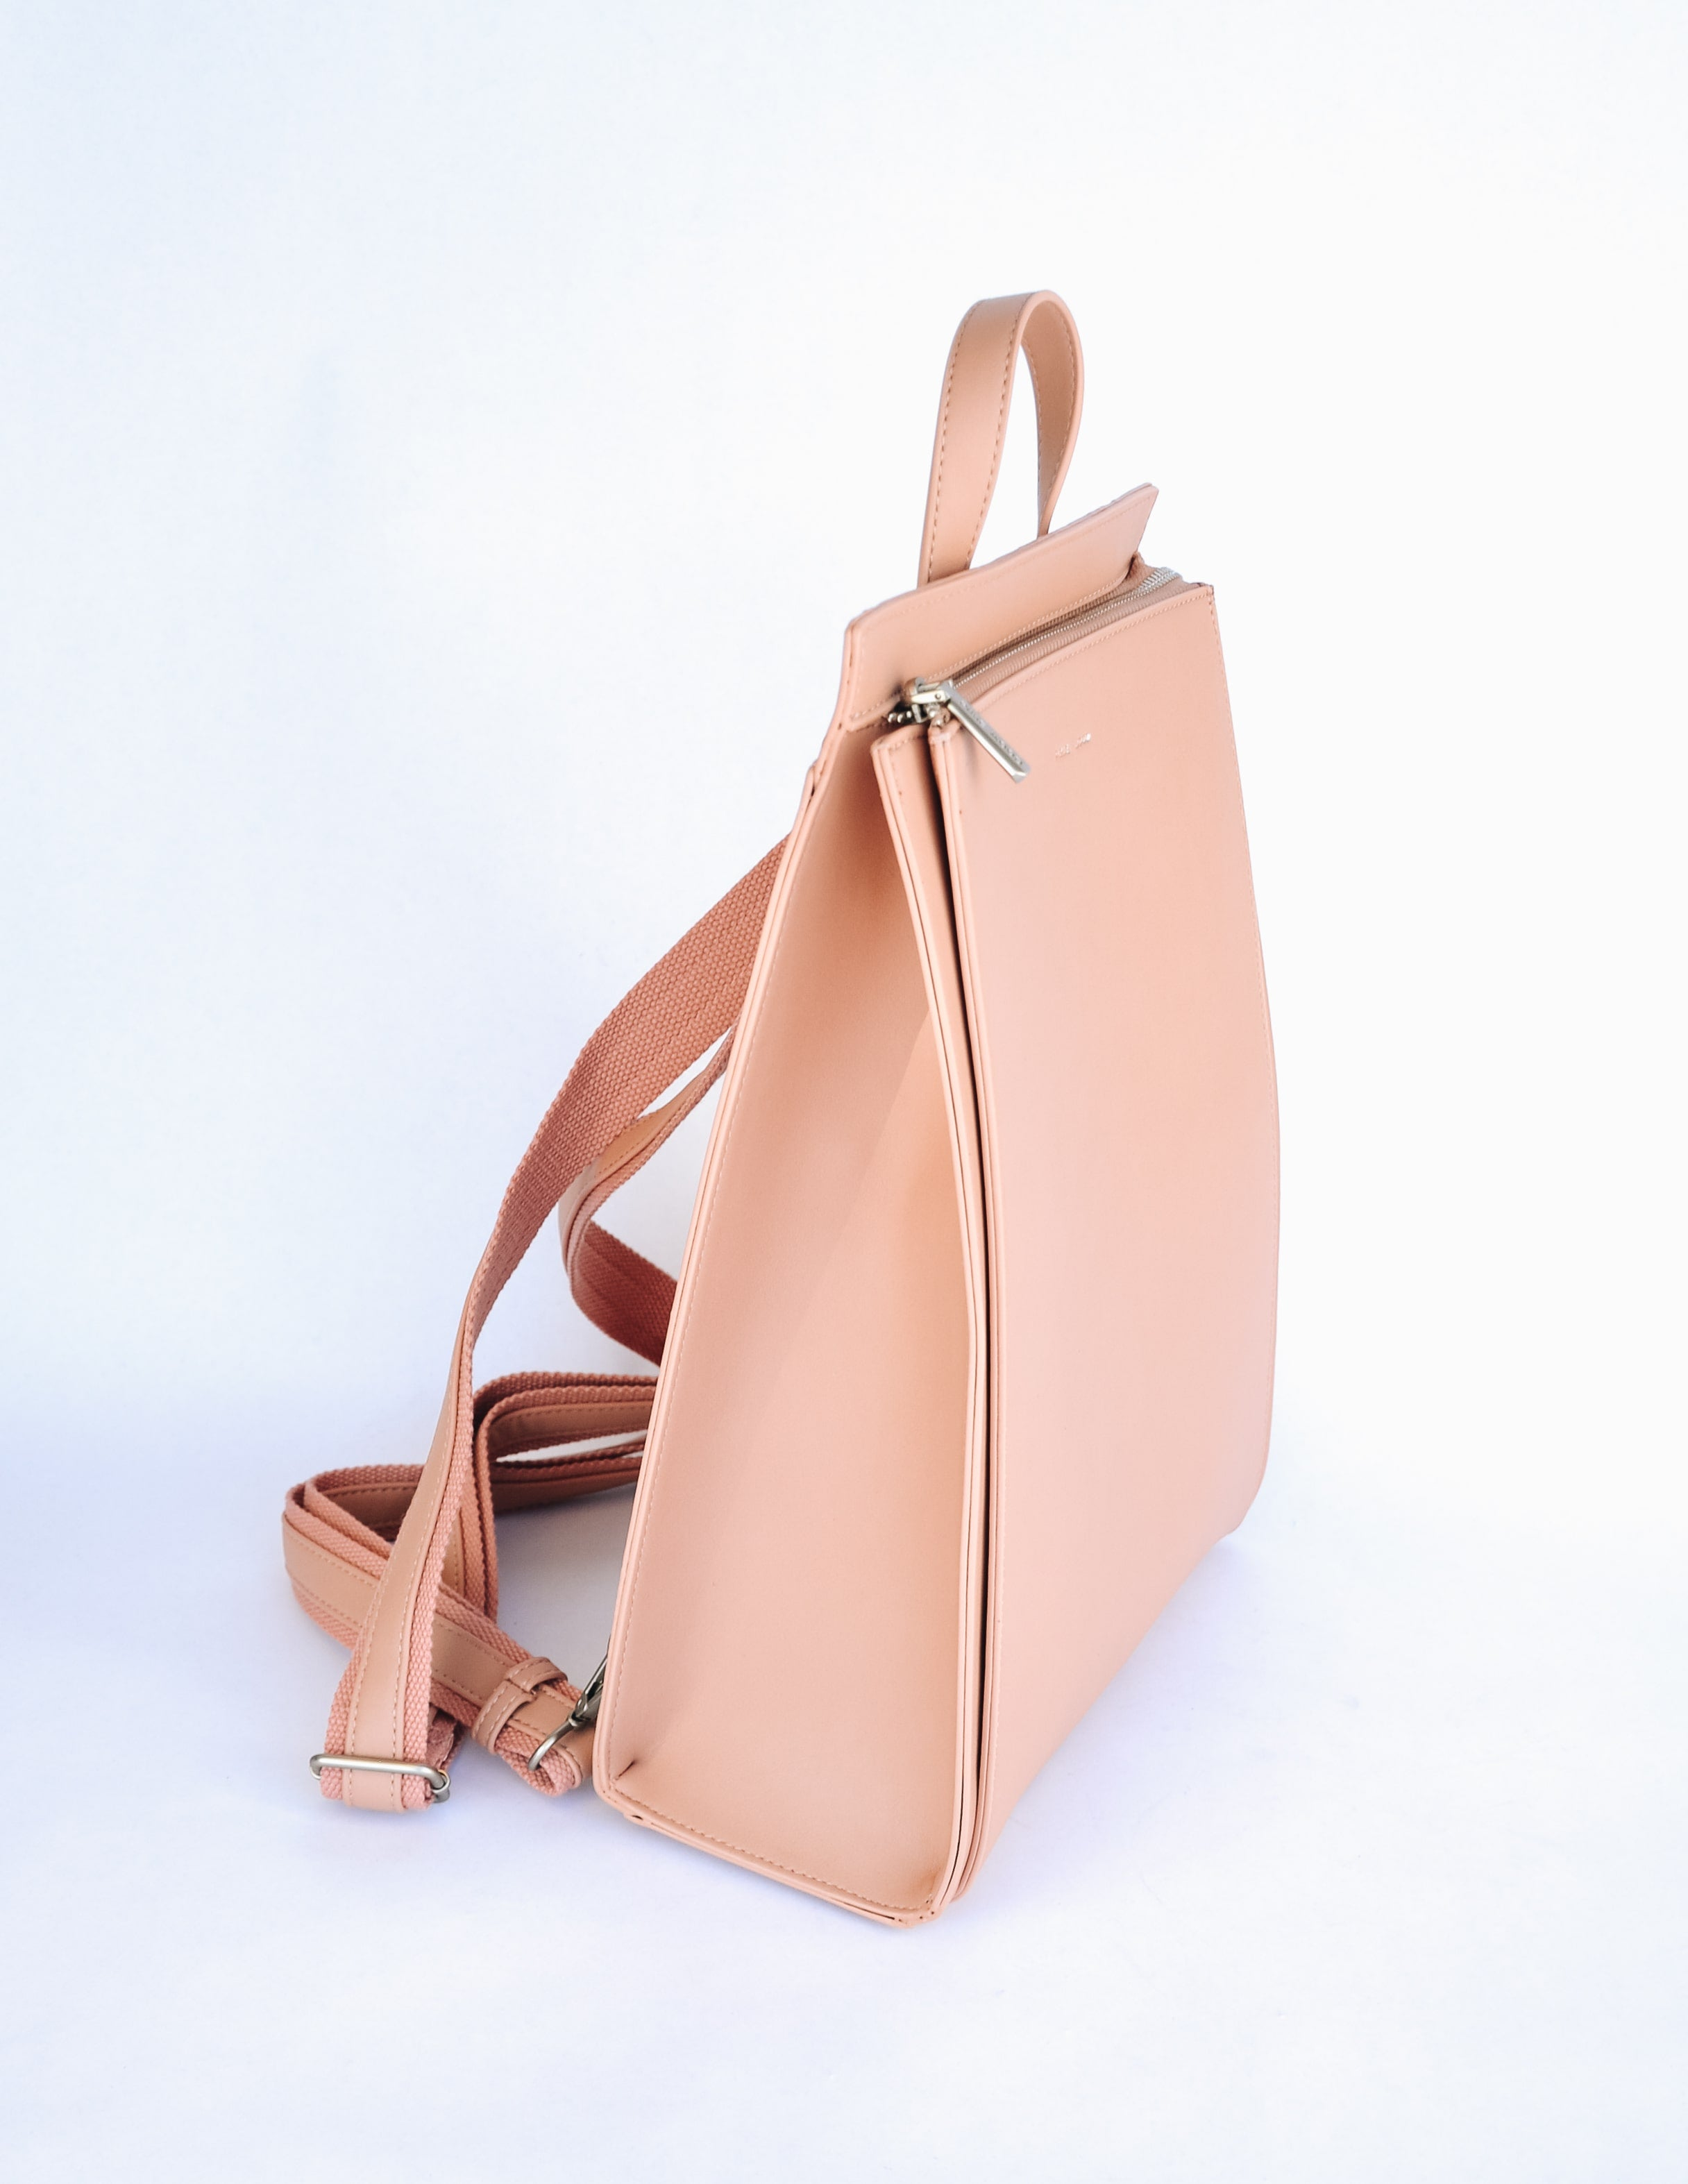 Pixie mood carrie backpack in apricot on white background - elle bleu